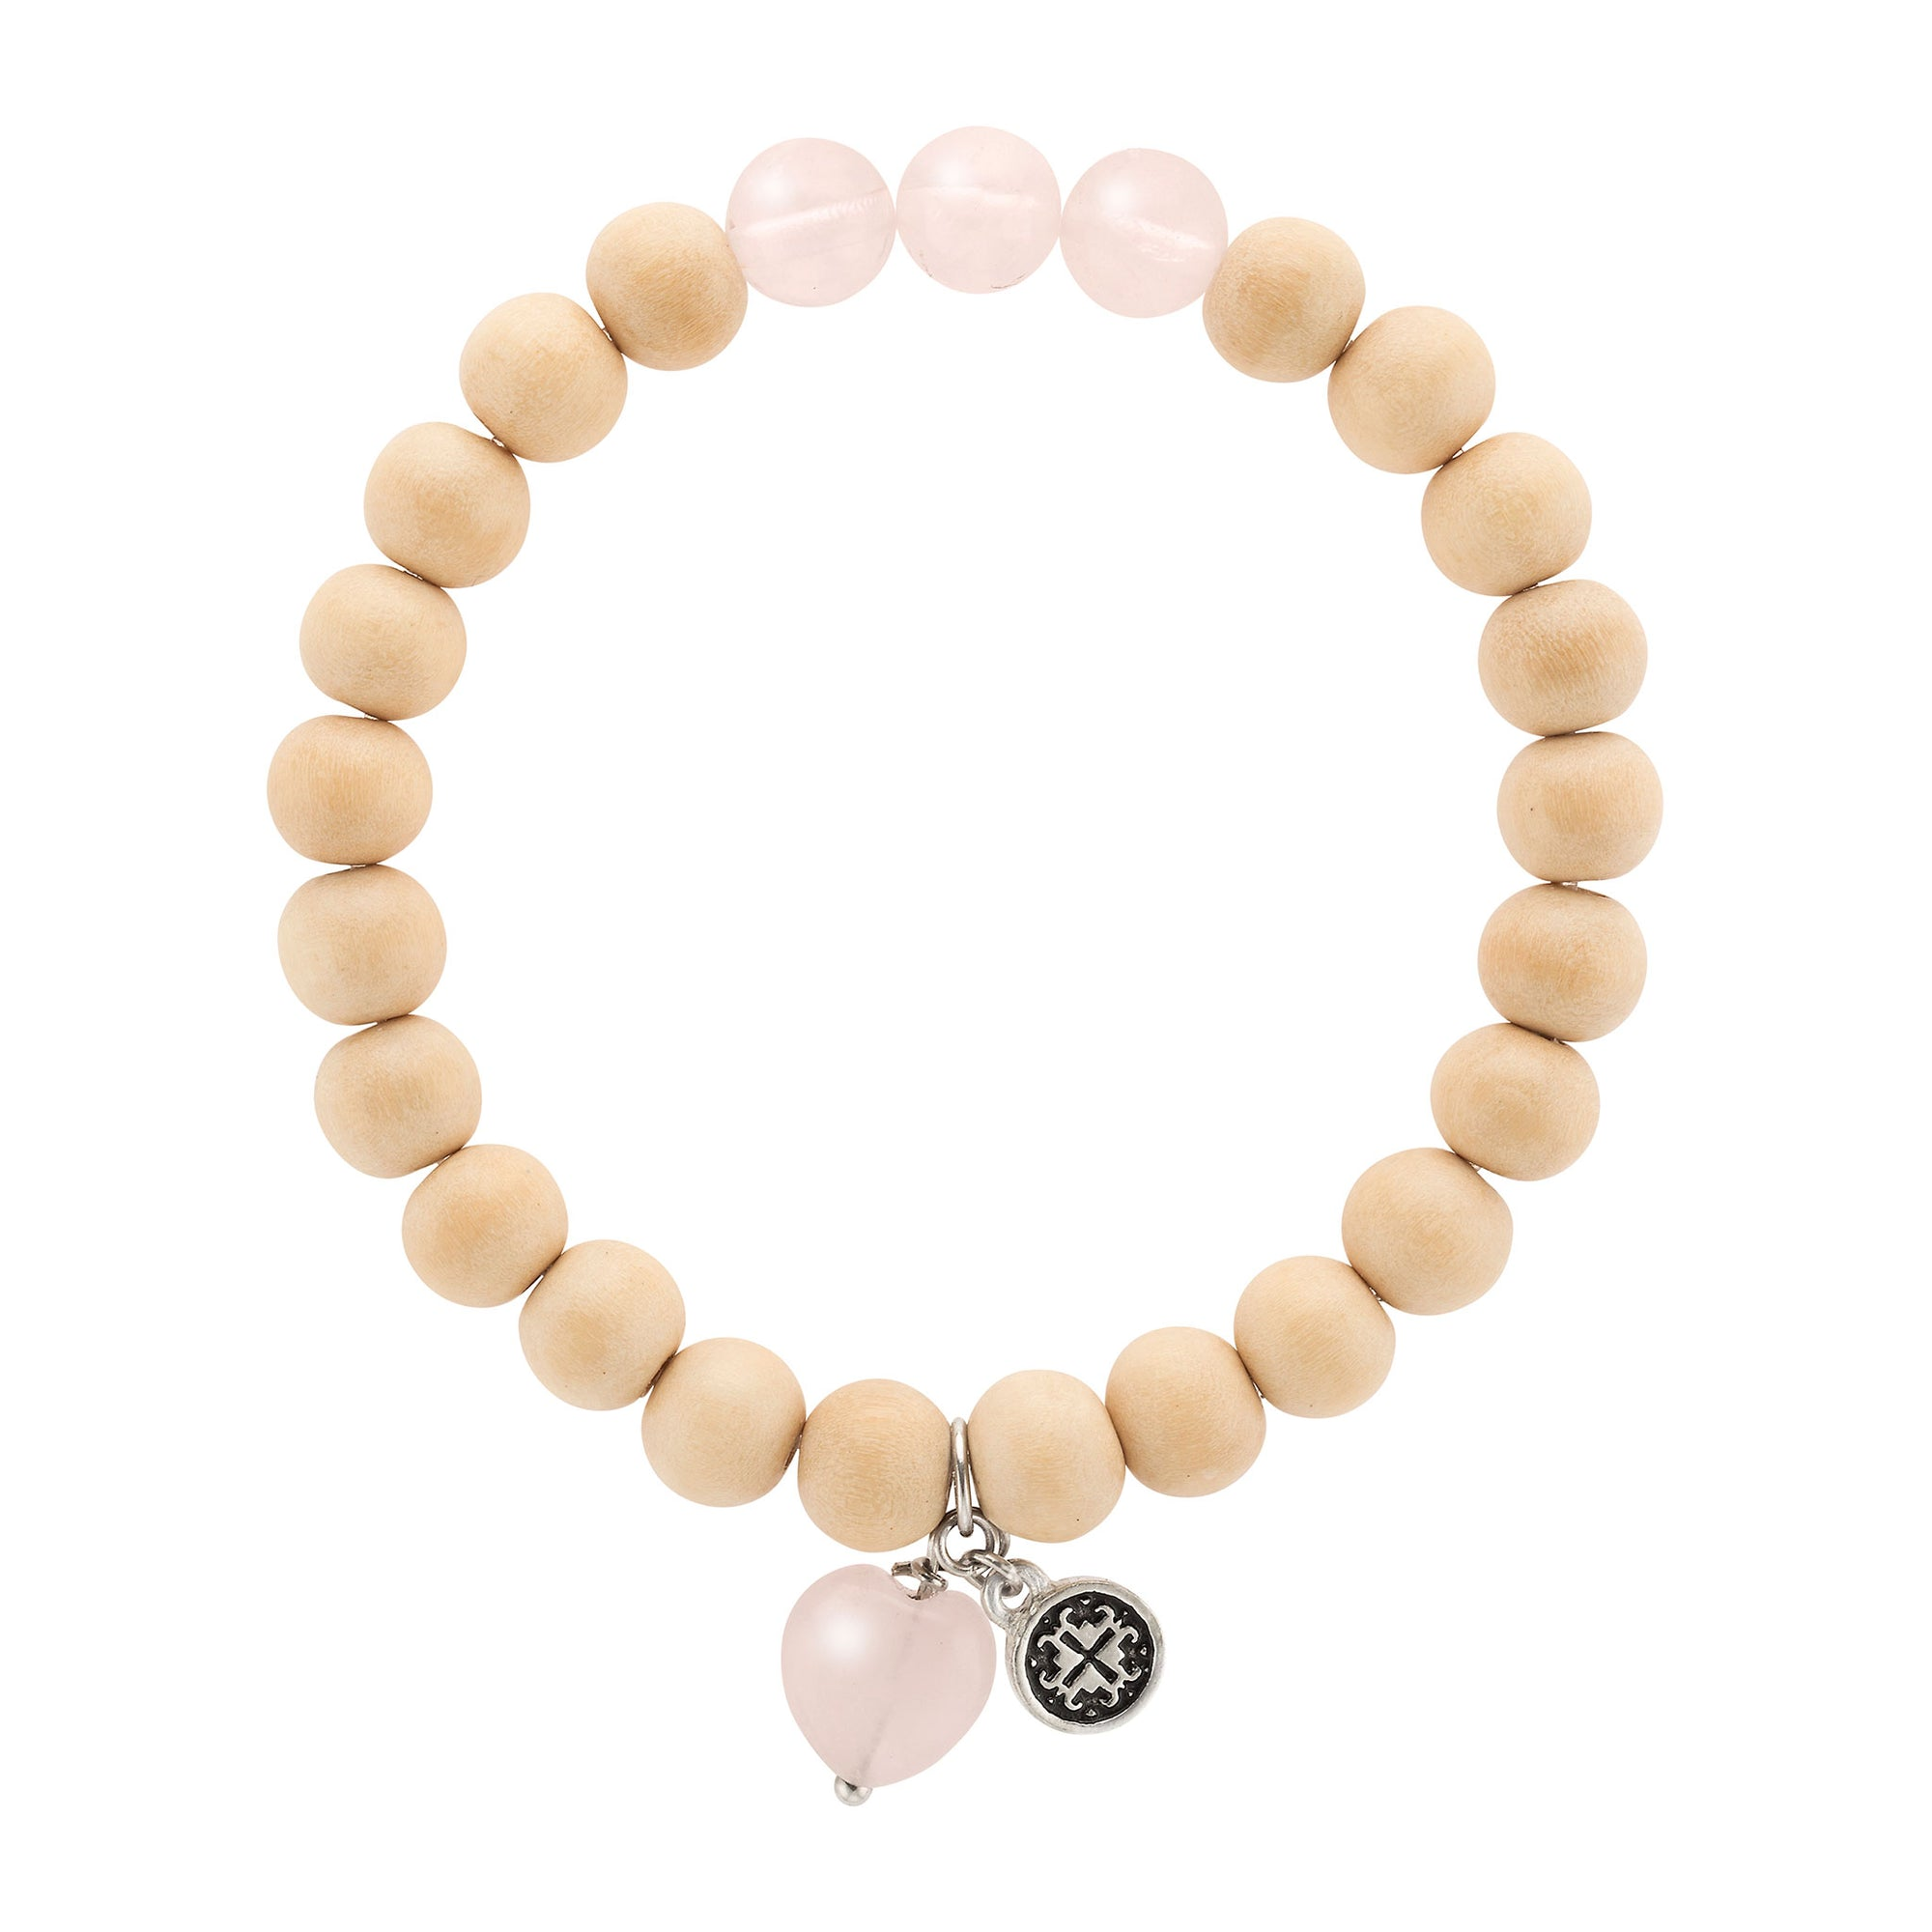 BE LOVE: Whitewood + Rose Quartz Triple Happiness Stretch Bracelet with Rose Quartz Heart Charm